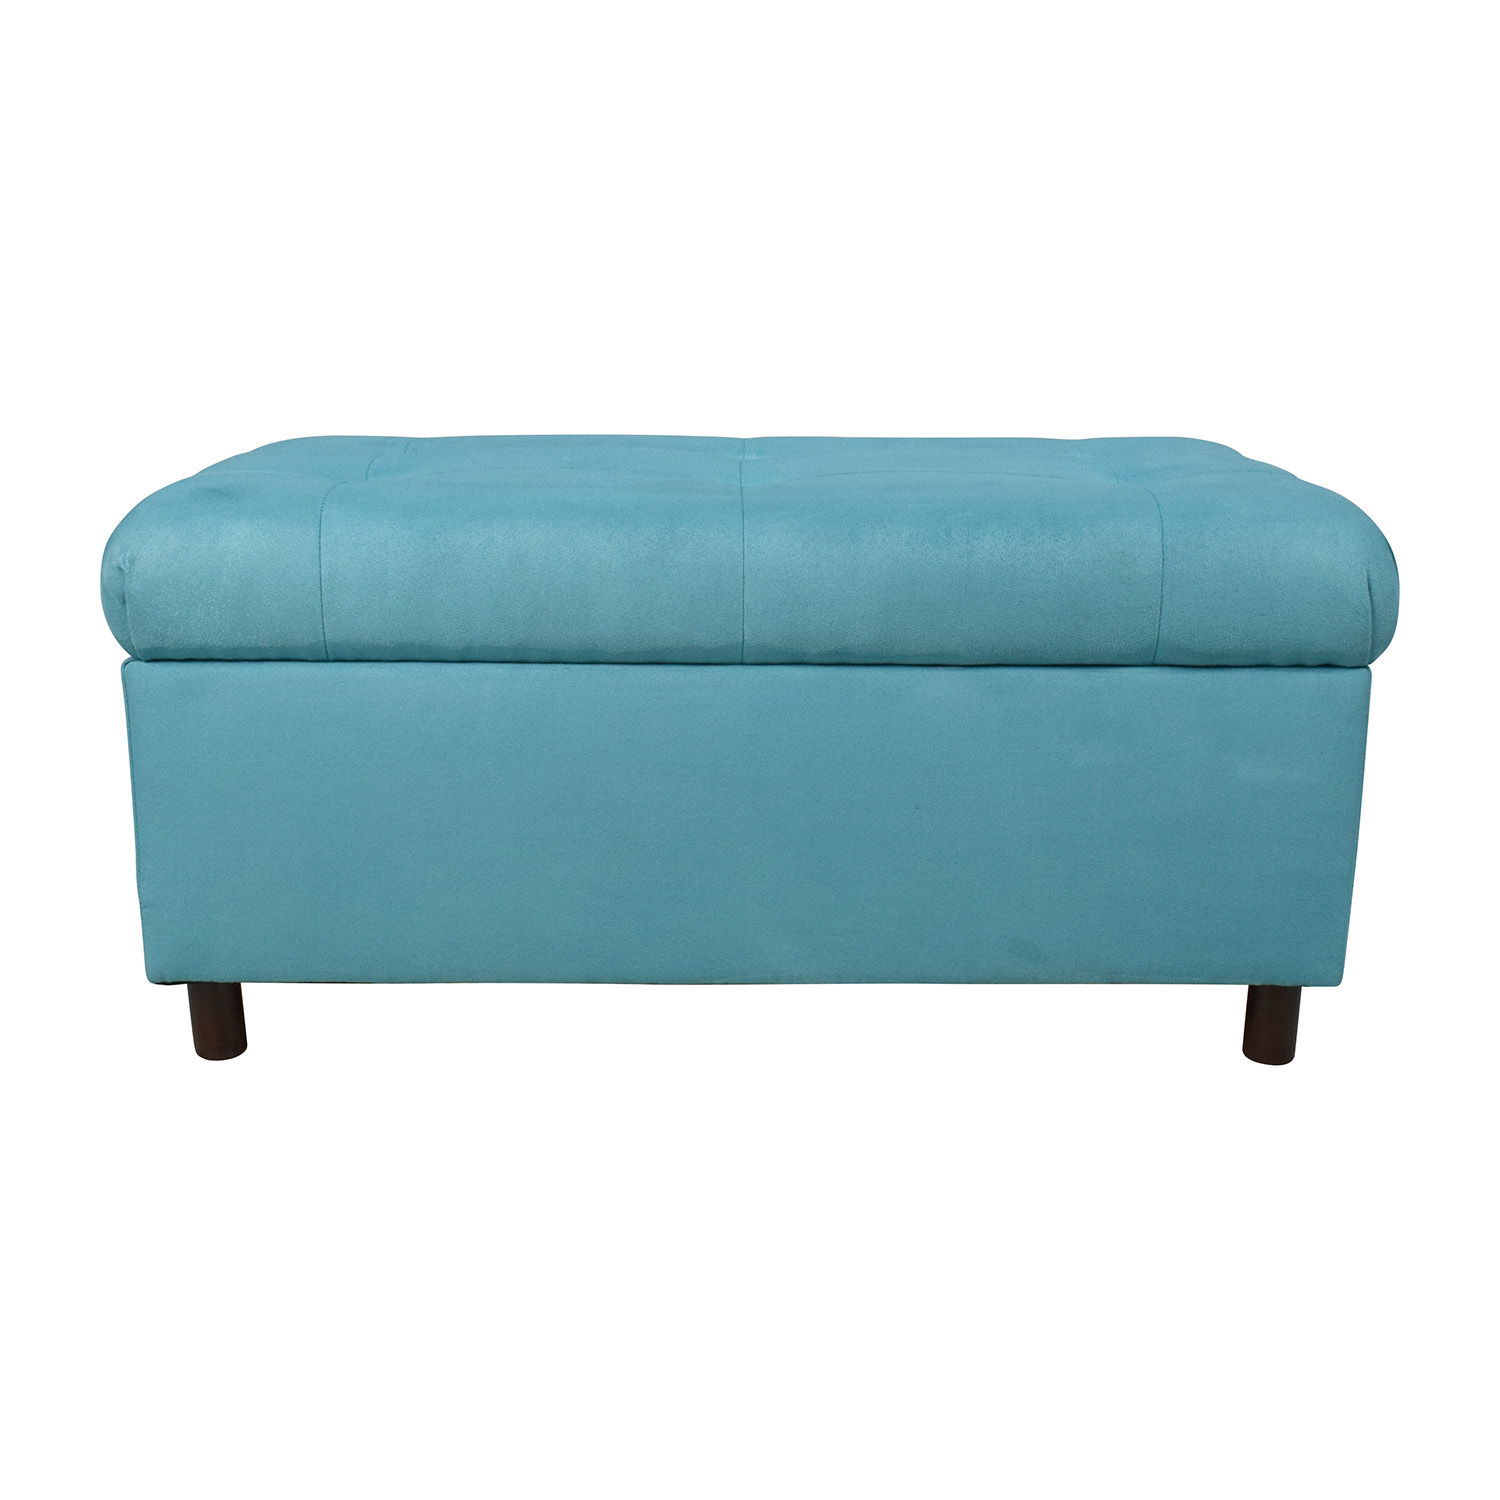 buy Alcott Hill Bretton Tufted Top Bench Storage Ottoman Alcott Hill Storage